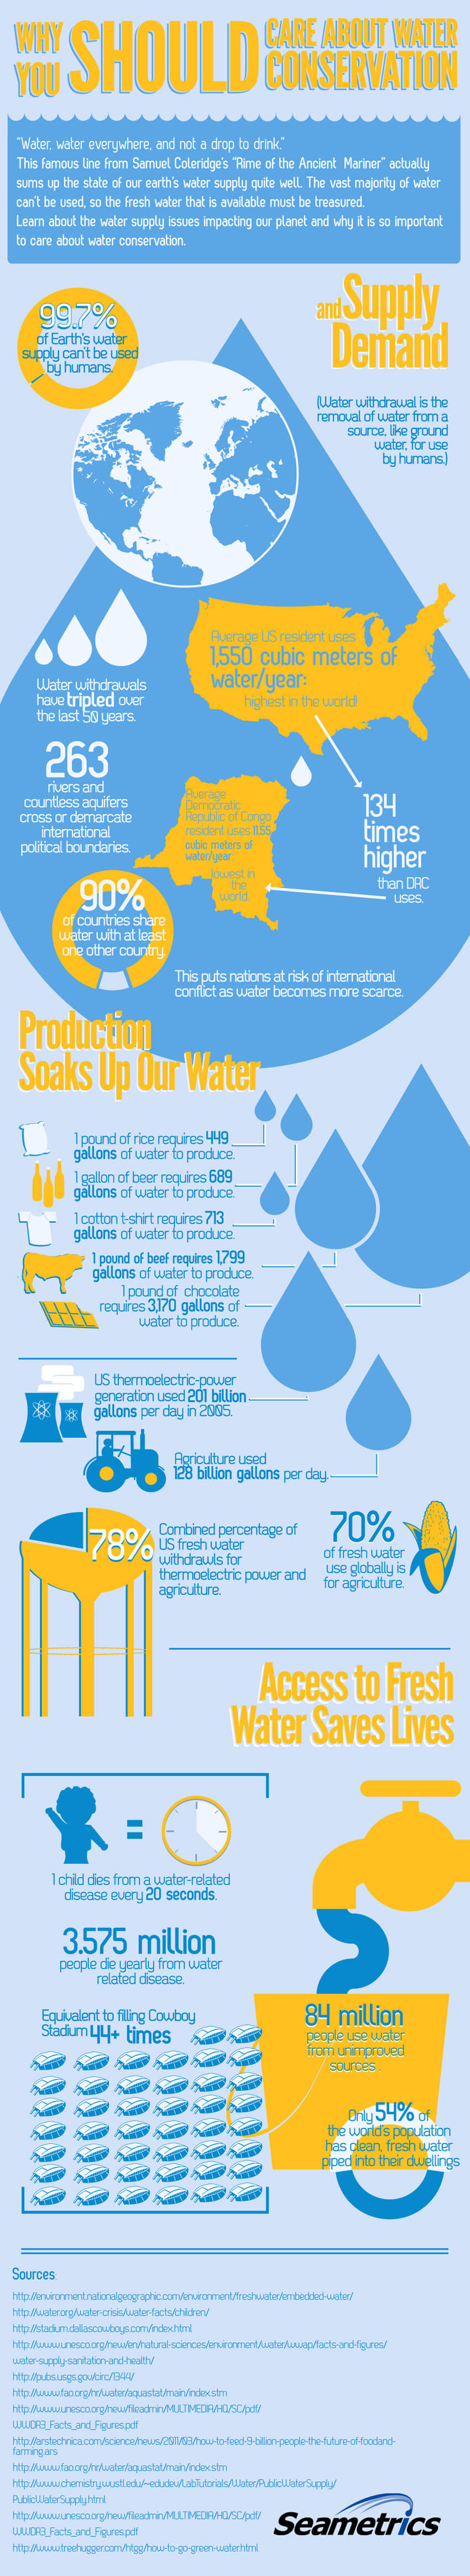 Why You Should Care About Water Conservation Tipsographic